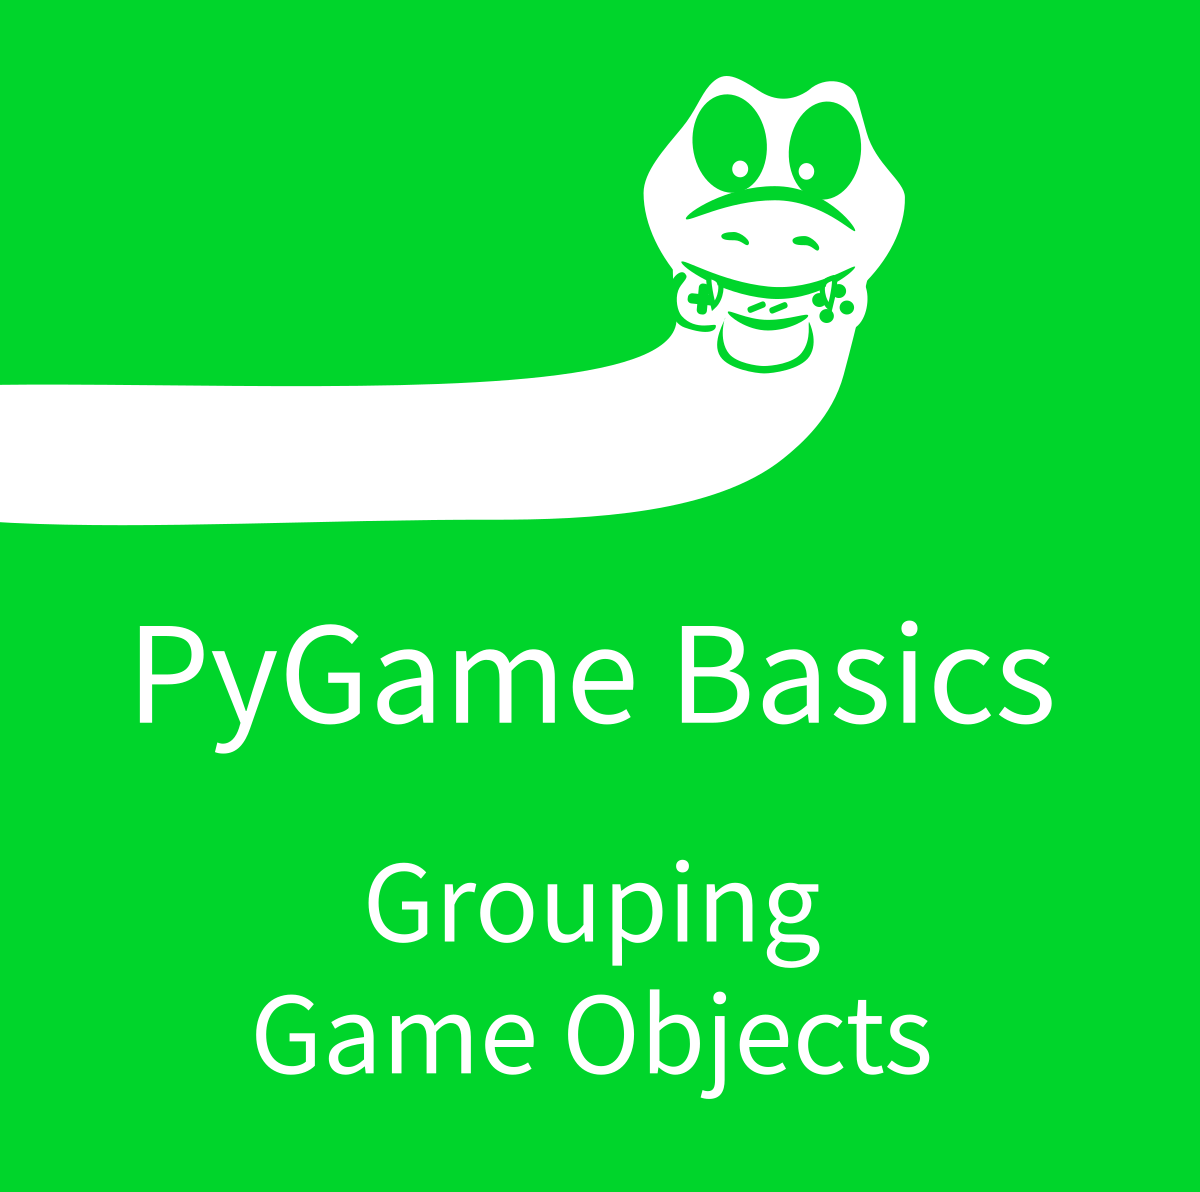 PyGame Basics: Grouping Game Objects